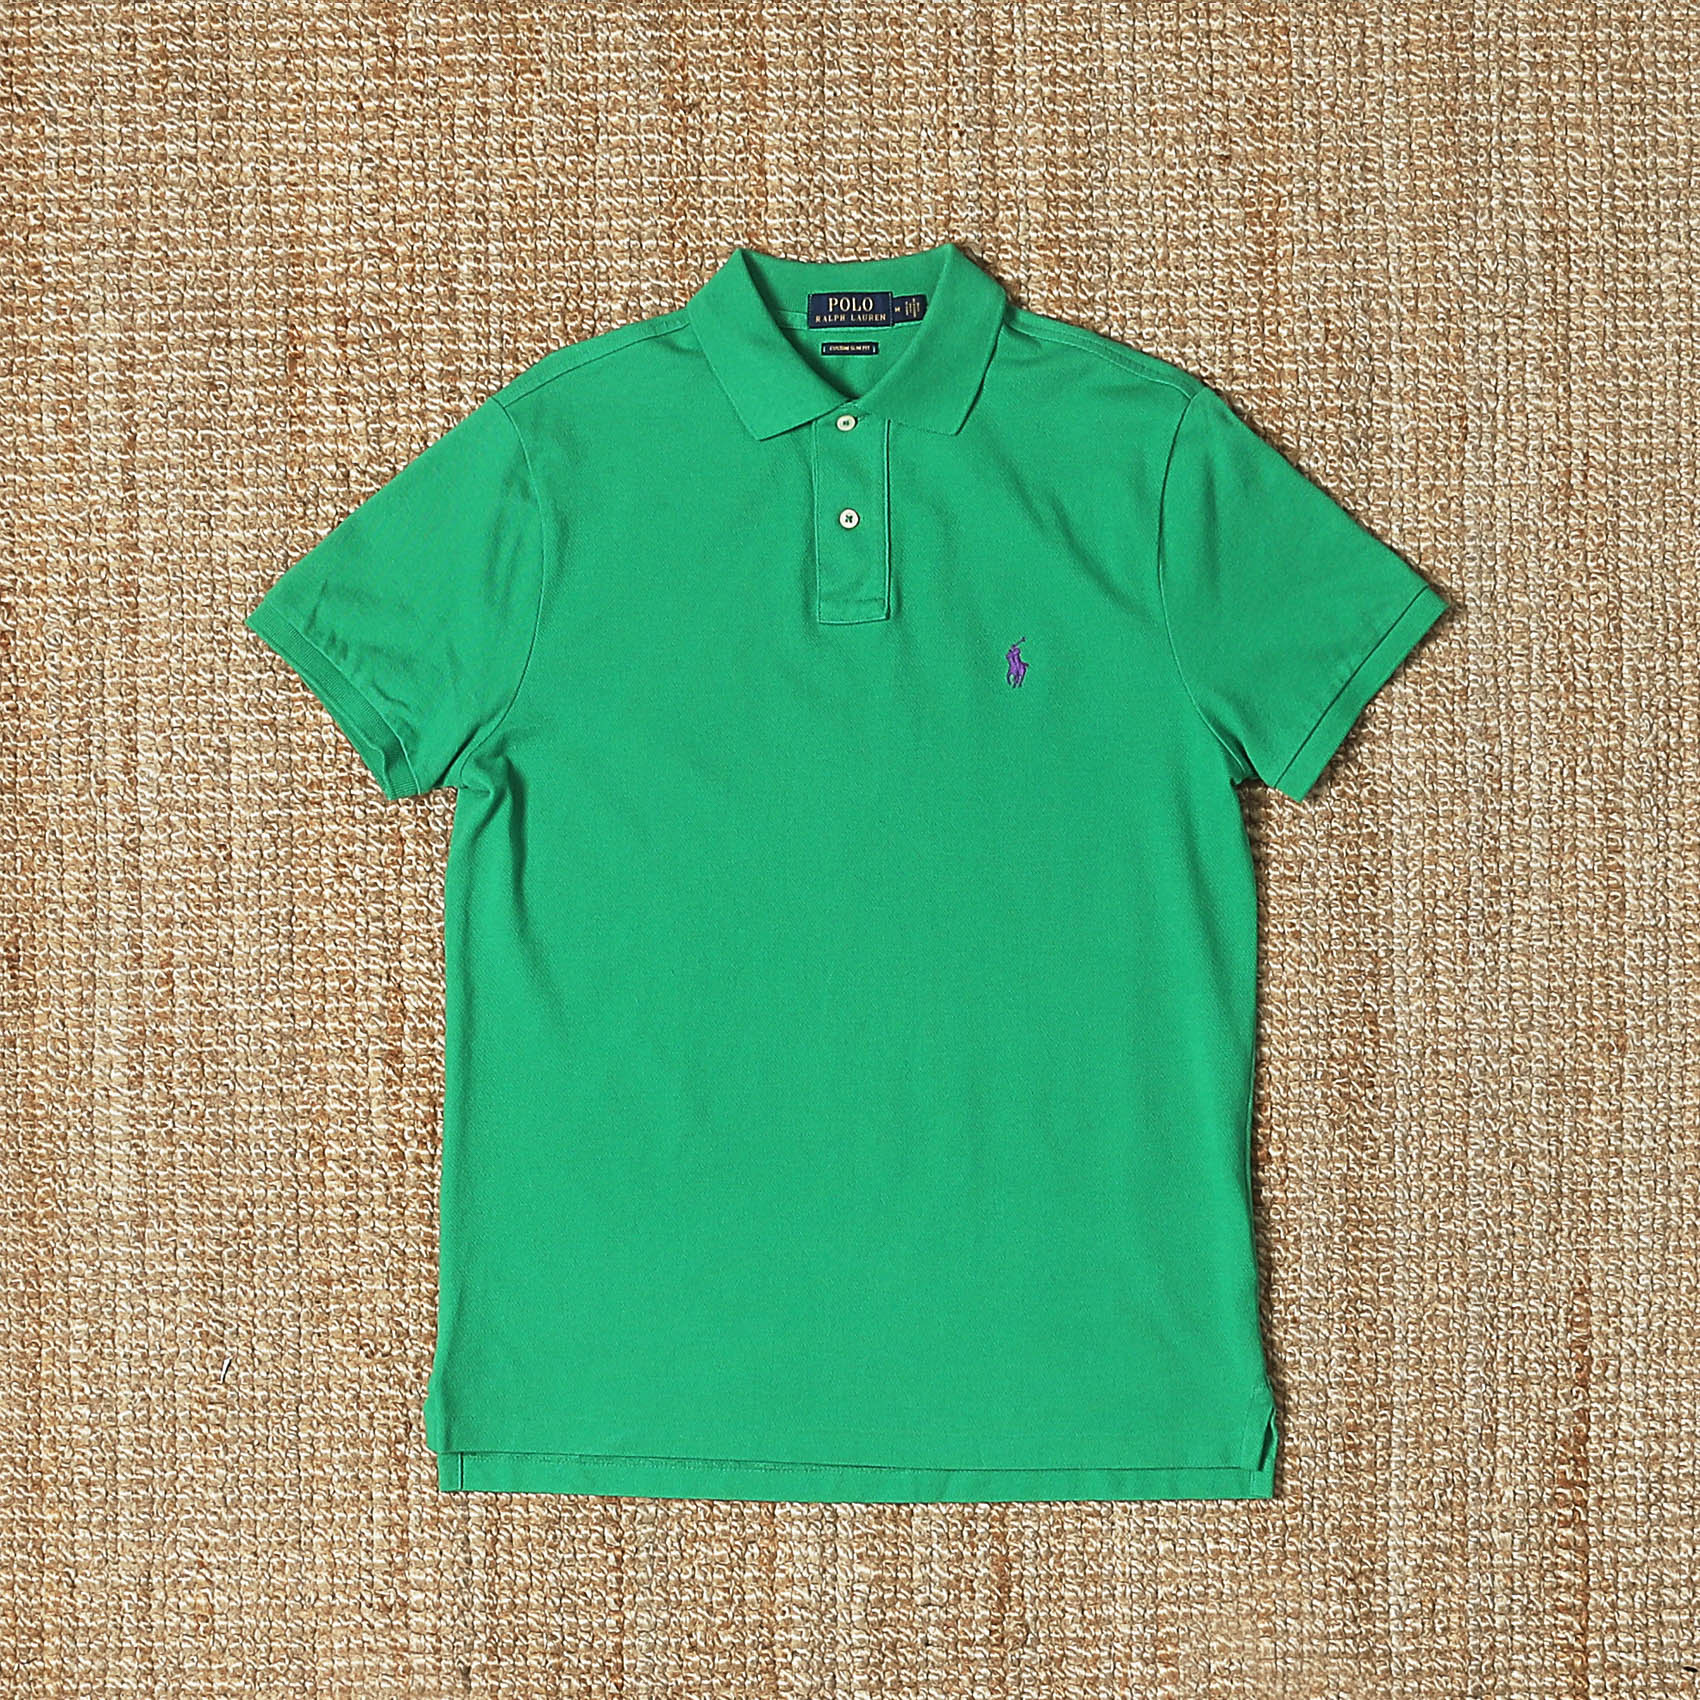 POLO RALPH LAUREN PIQUE T-SHIRT - GREEN